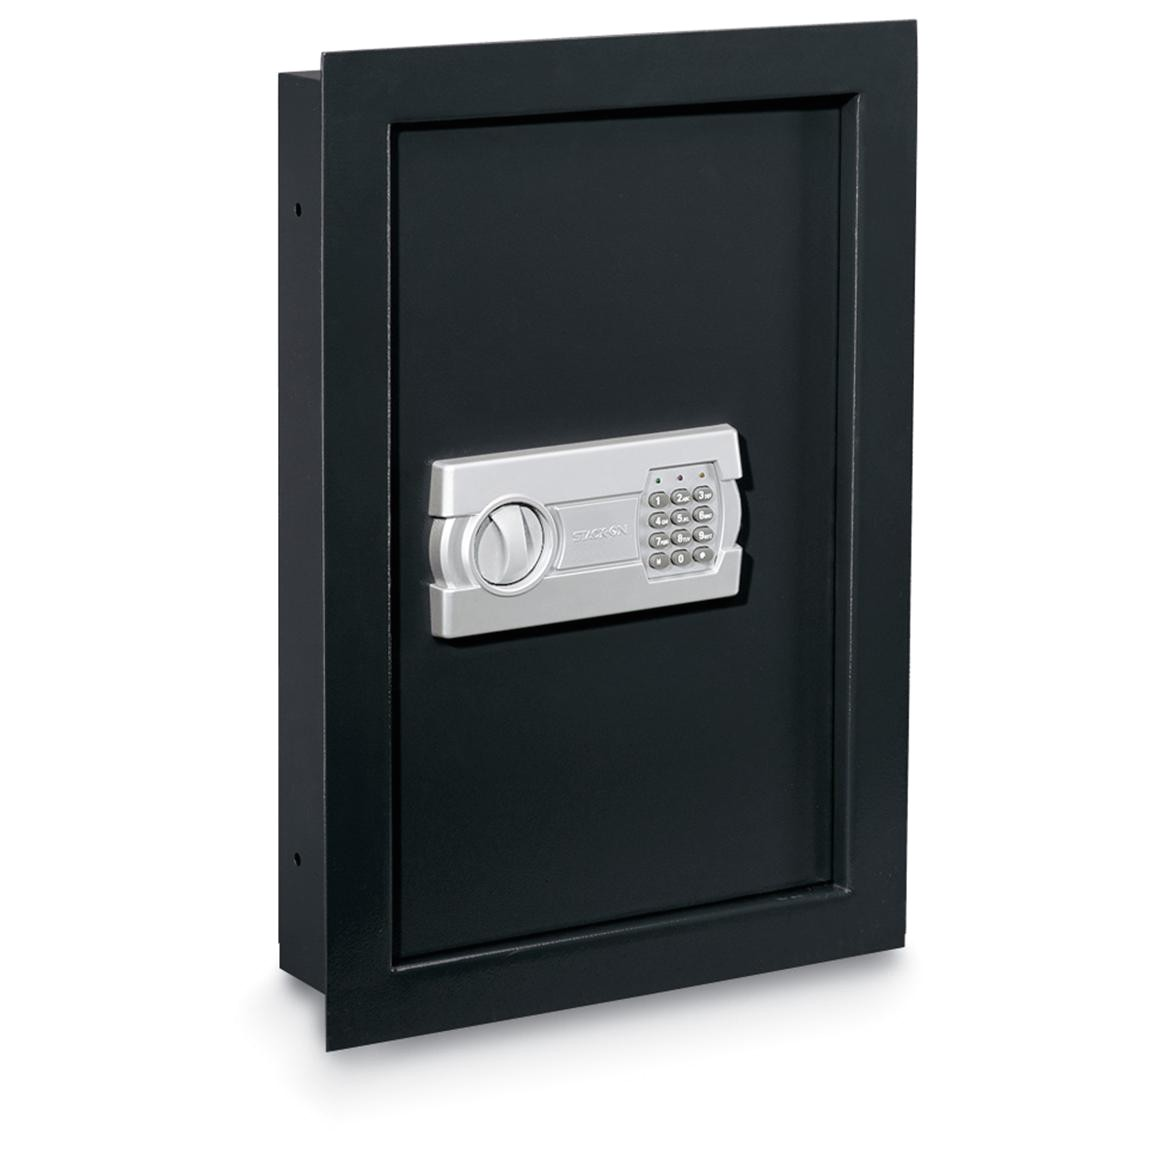 Fireproof Wall Safe Between Studs Stack On Between Studs Wall Safe 121395 Gun Safes at